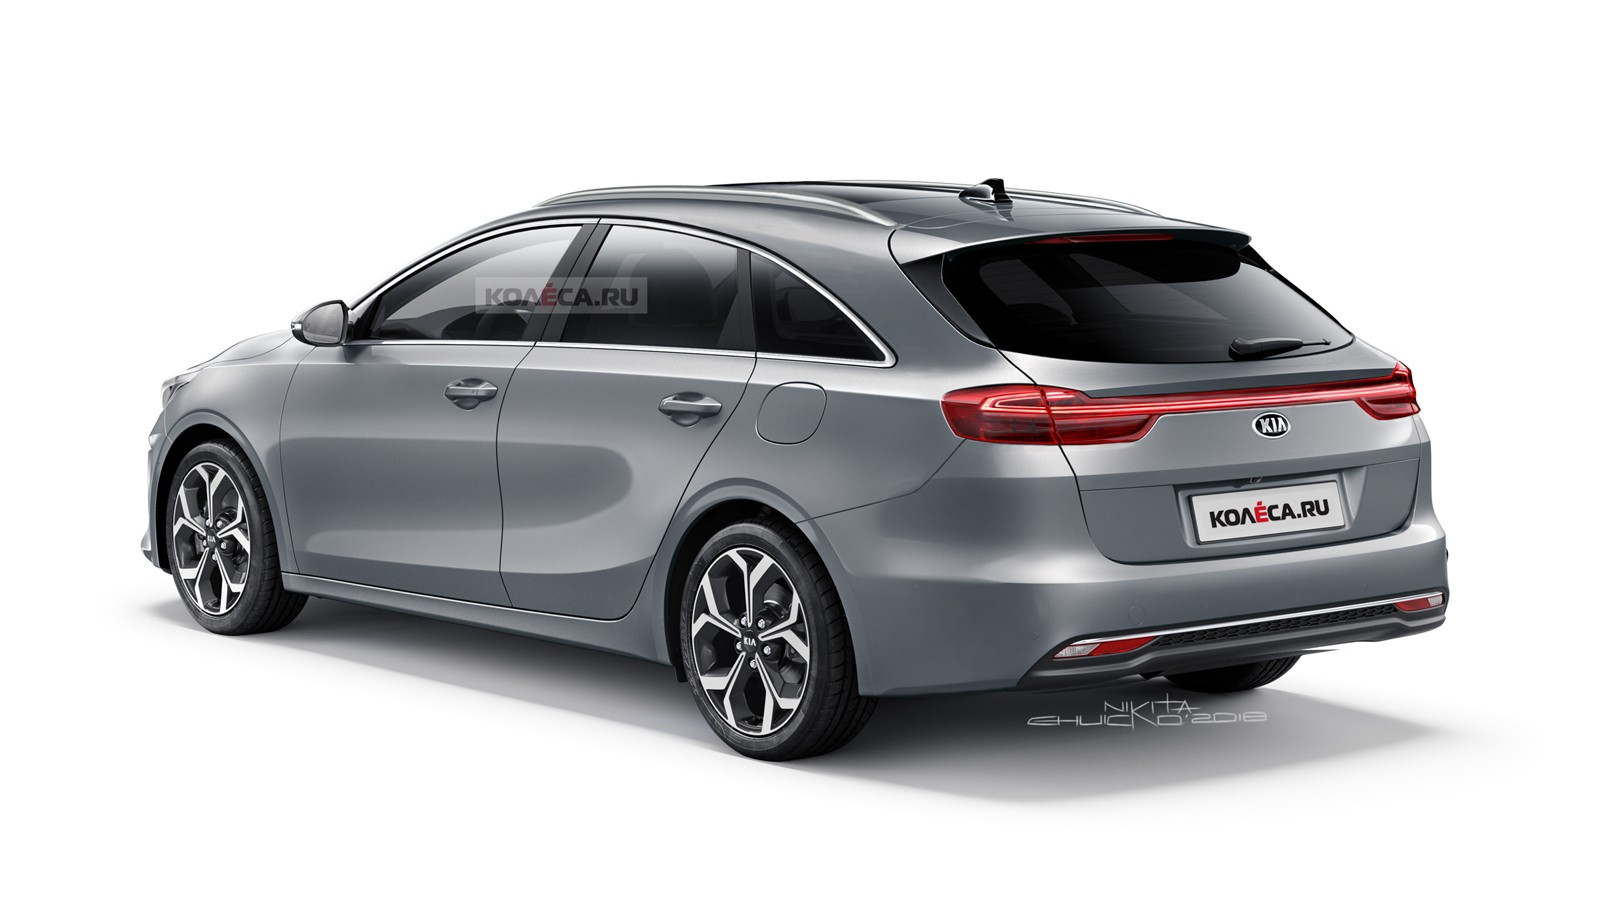 Kia Proceed rear1